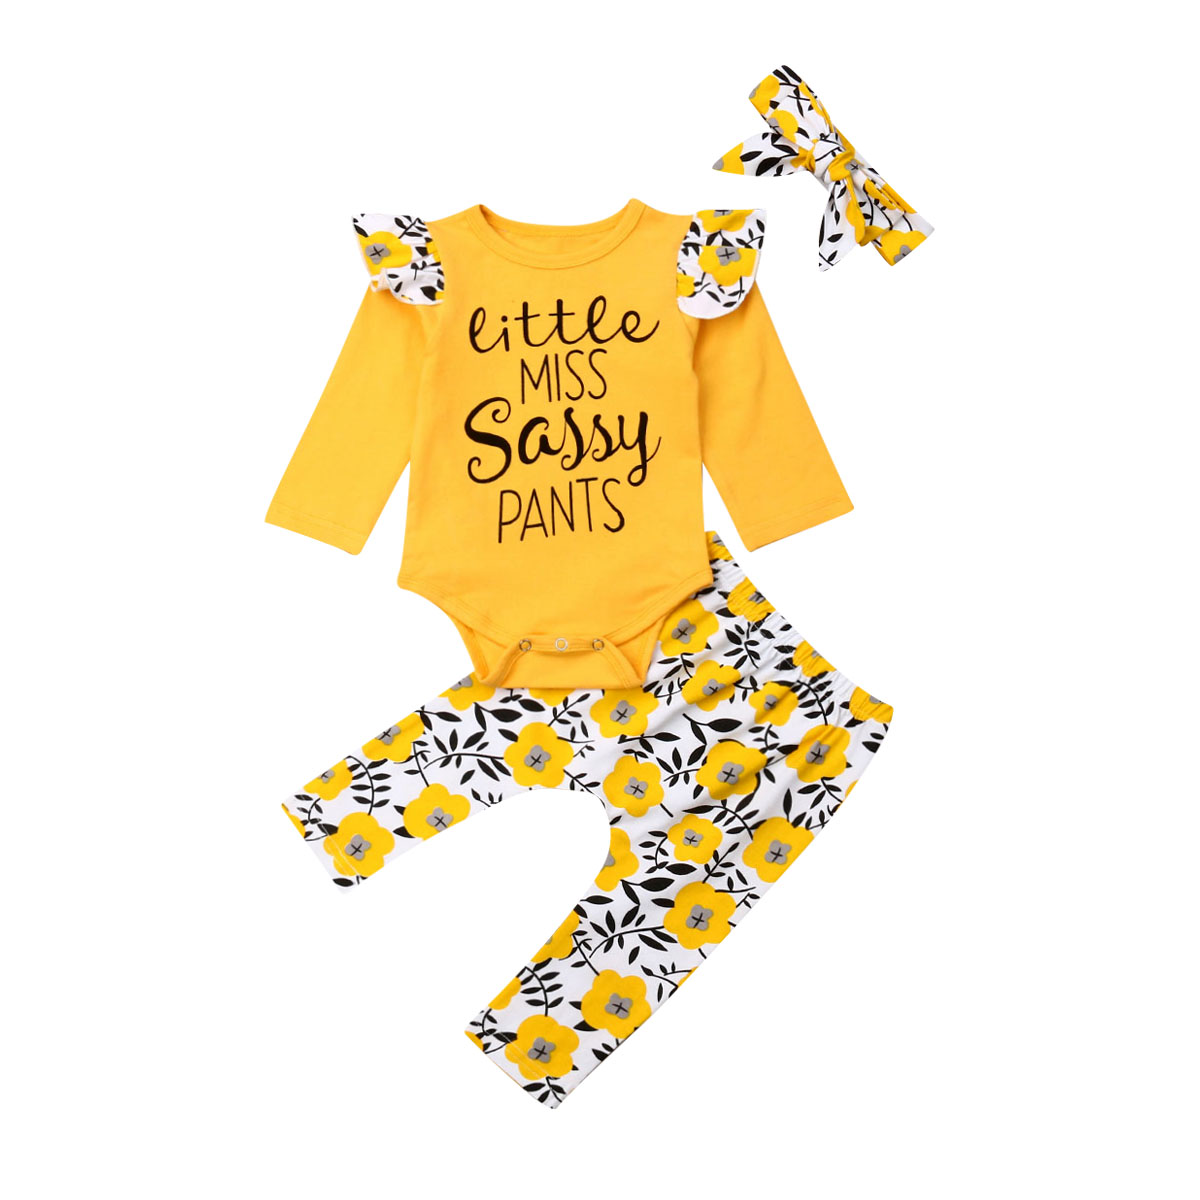 0-24M <font><b>Newborn</b></font> Infant <font><b>Baby</b></font> <font><b>Girls</b></font> <font><b>Clothes</b></font> Little Miss Sassy Dasiy Romper Top + Floral Long Pants + Headband Outfit <font><b>Autumn</b></font> 3PCS Set image